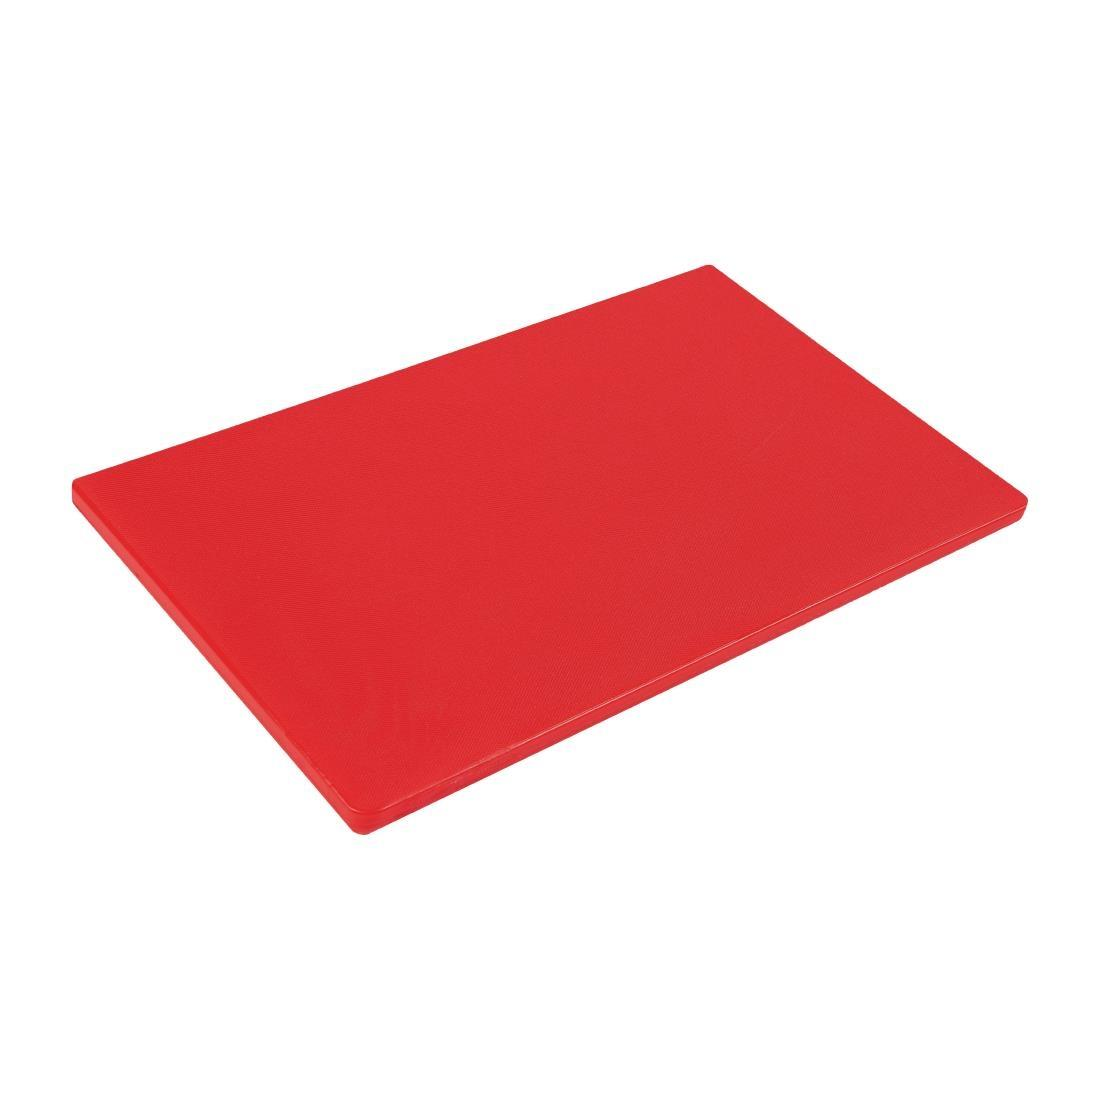 GL283 - Hygiplas Gastronorm 1/1 Red Chopping Board- Each - GL283